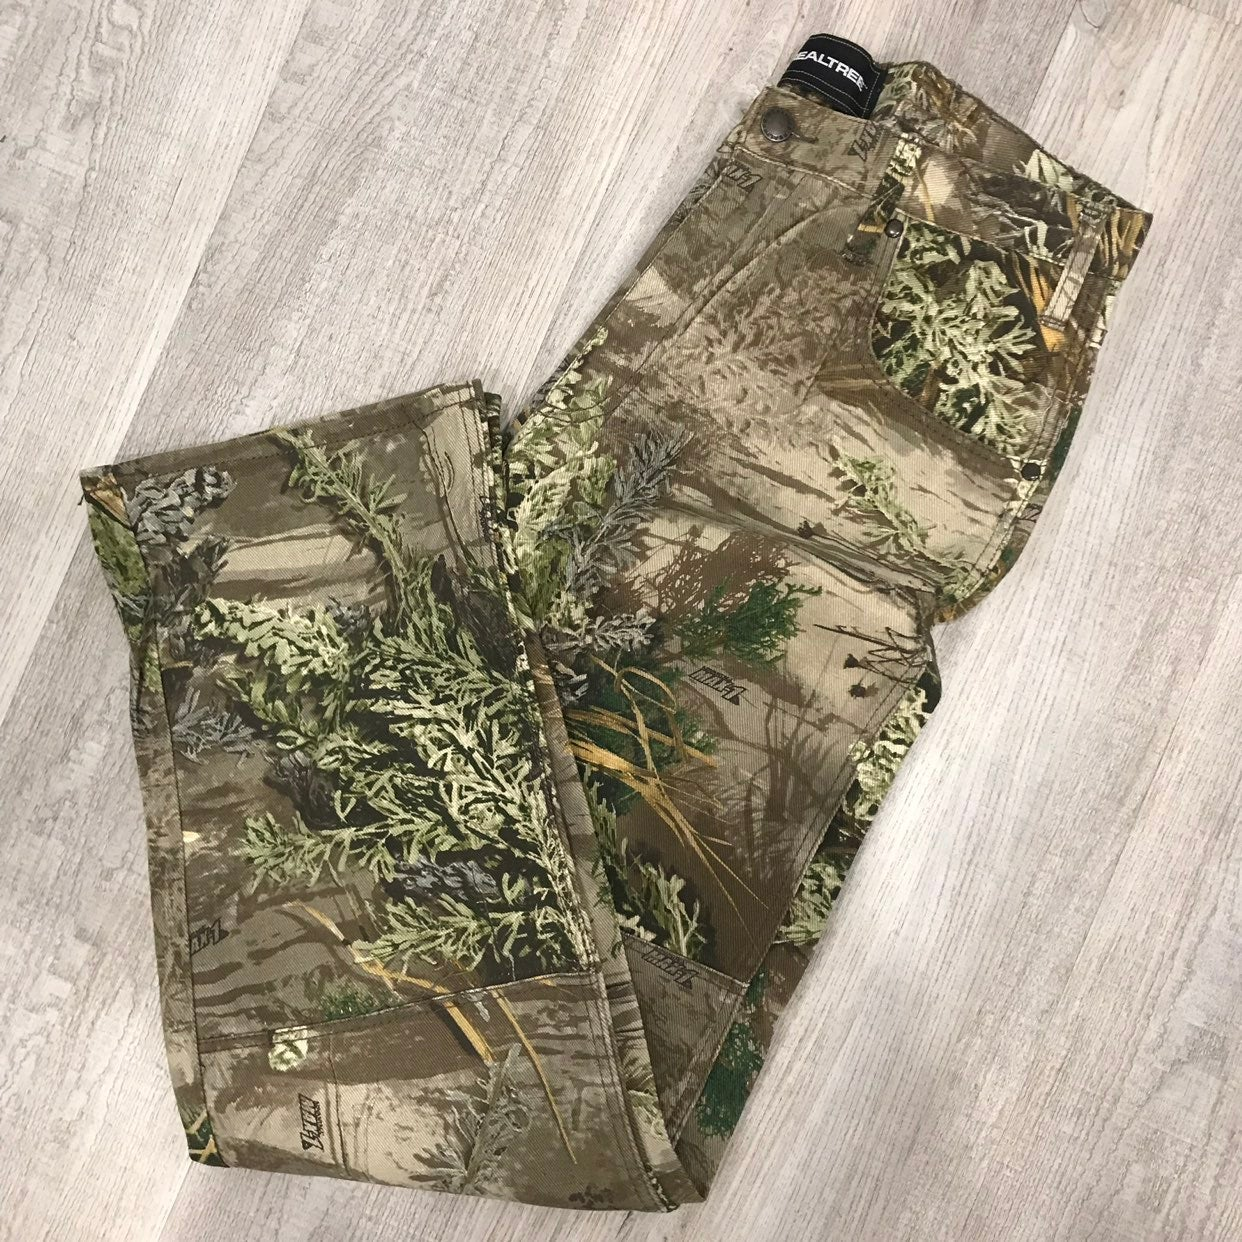 Realtree Camo Pants, size 30x30